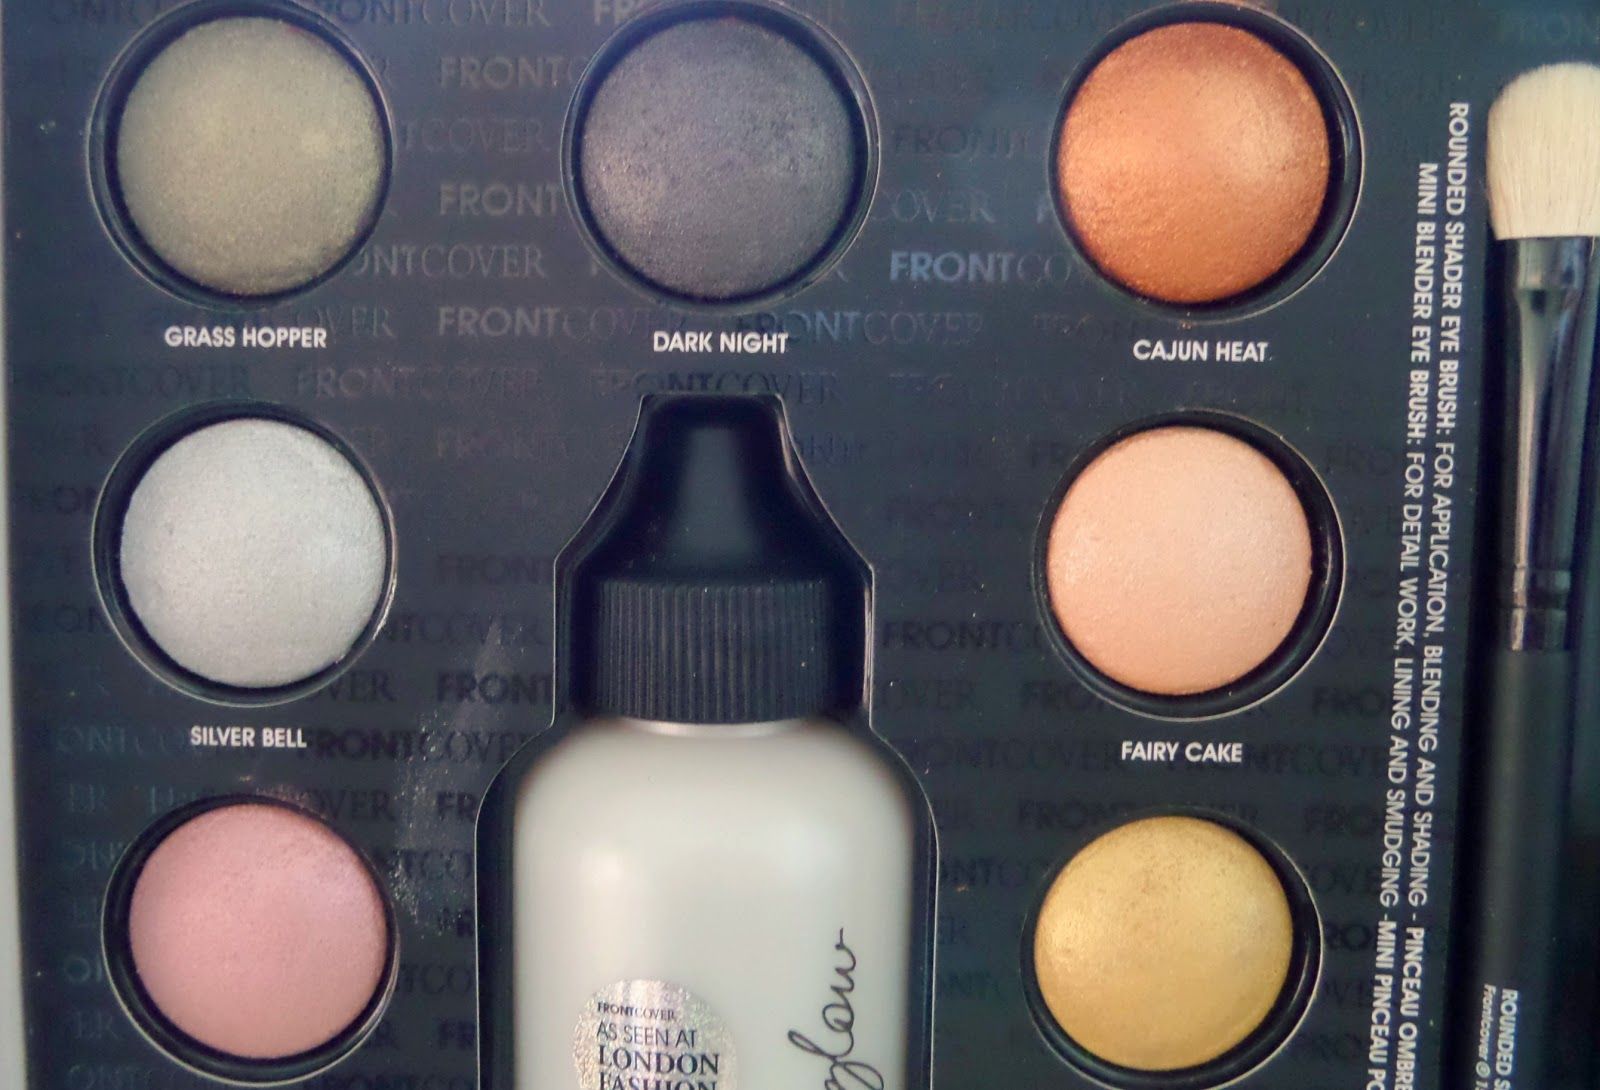 Front Cover Eye Colour Revolution Makeup Set Close Up